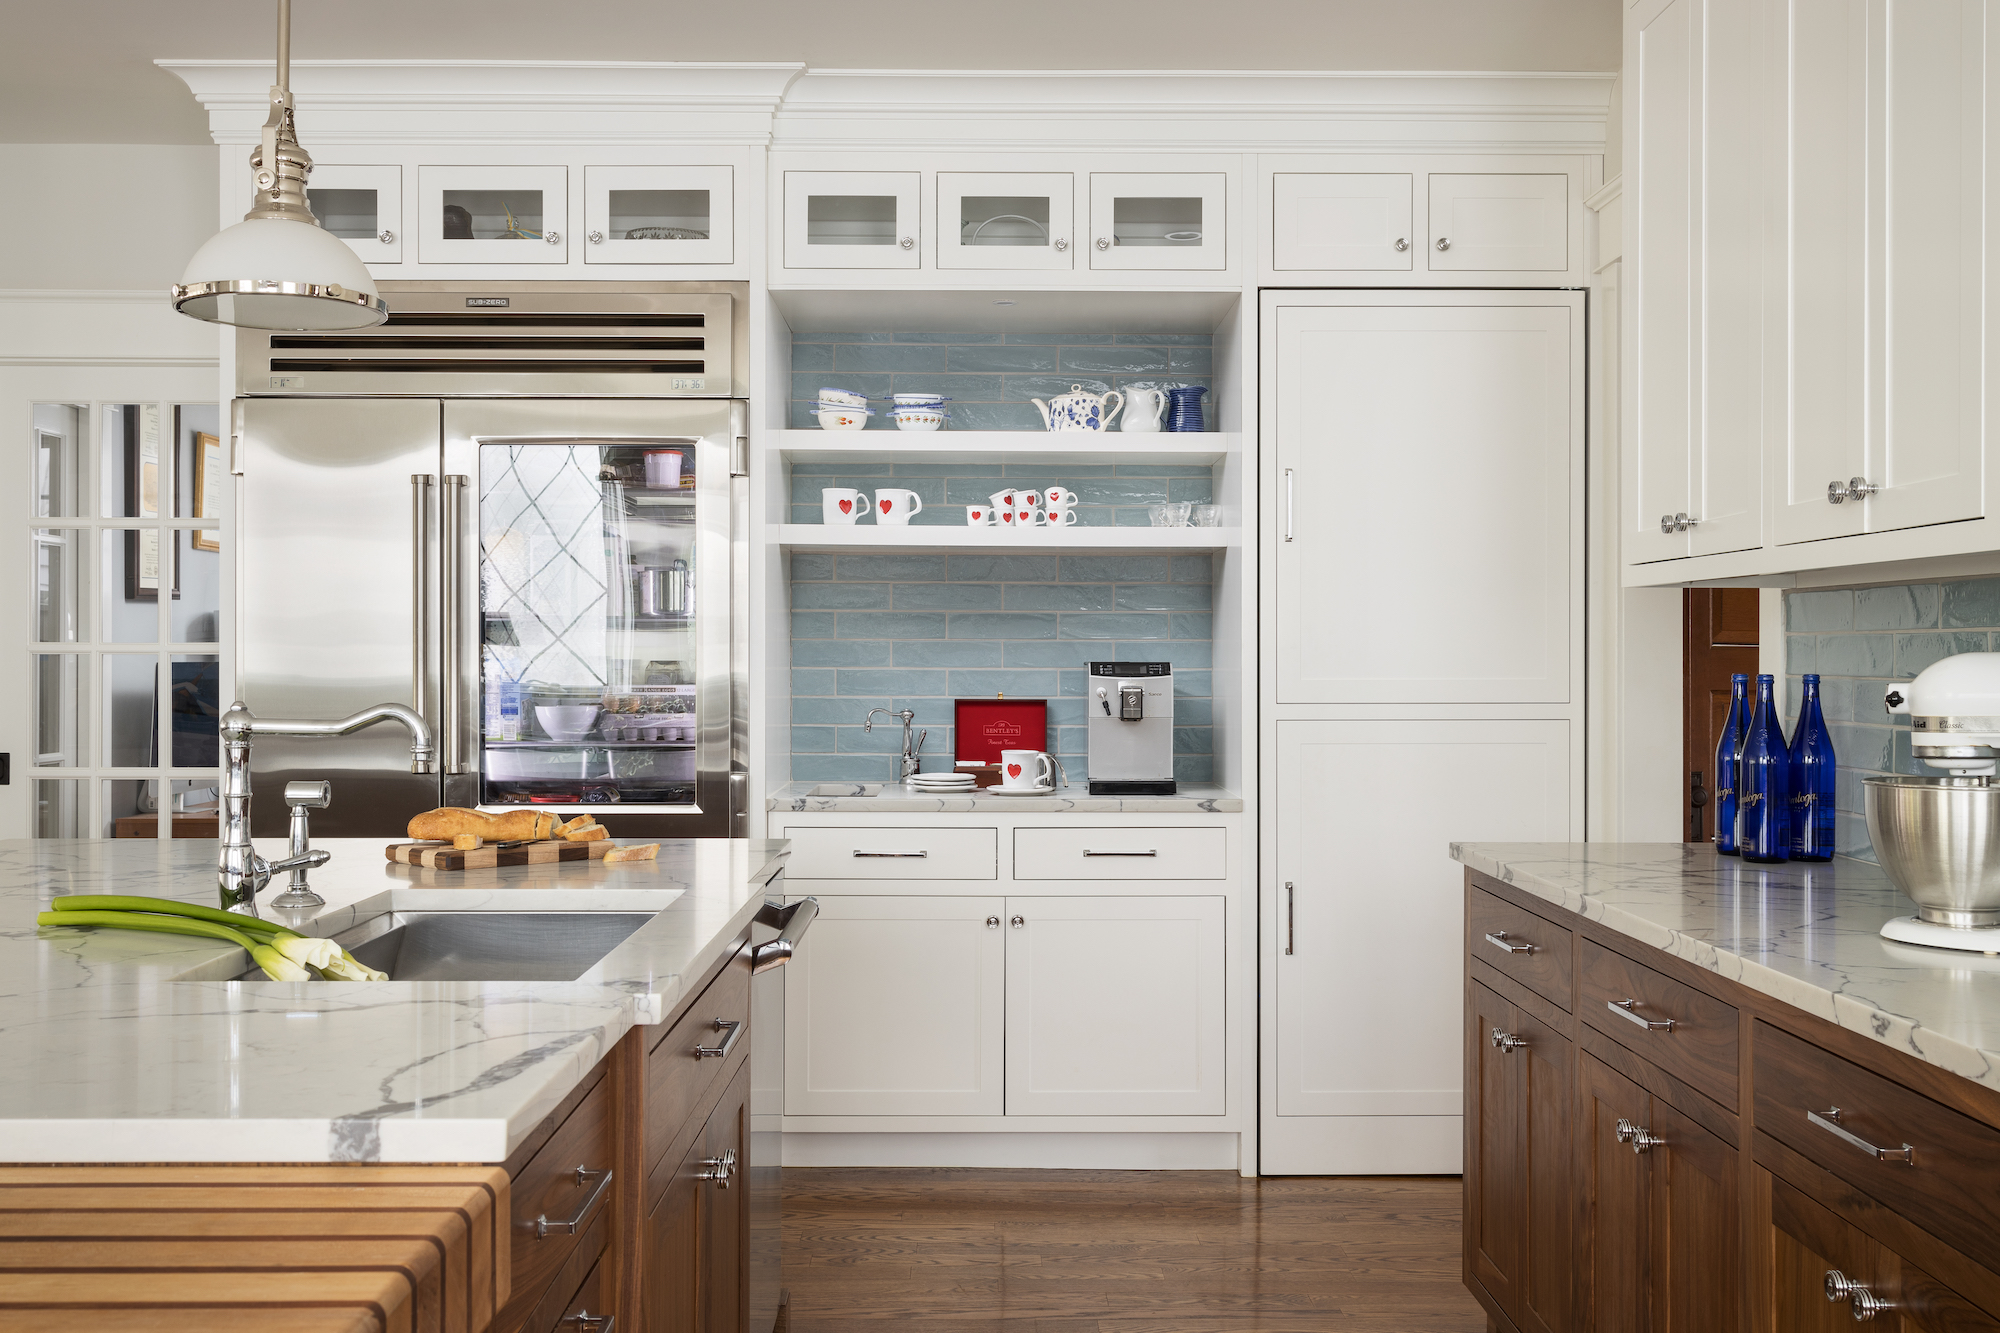 Inset Shaker Style Cabinet Doors in Kitchen